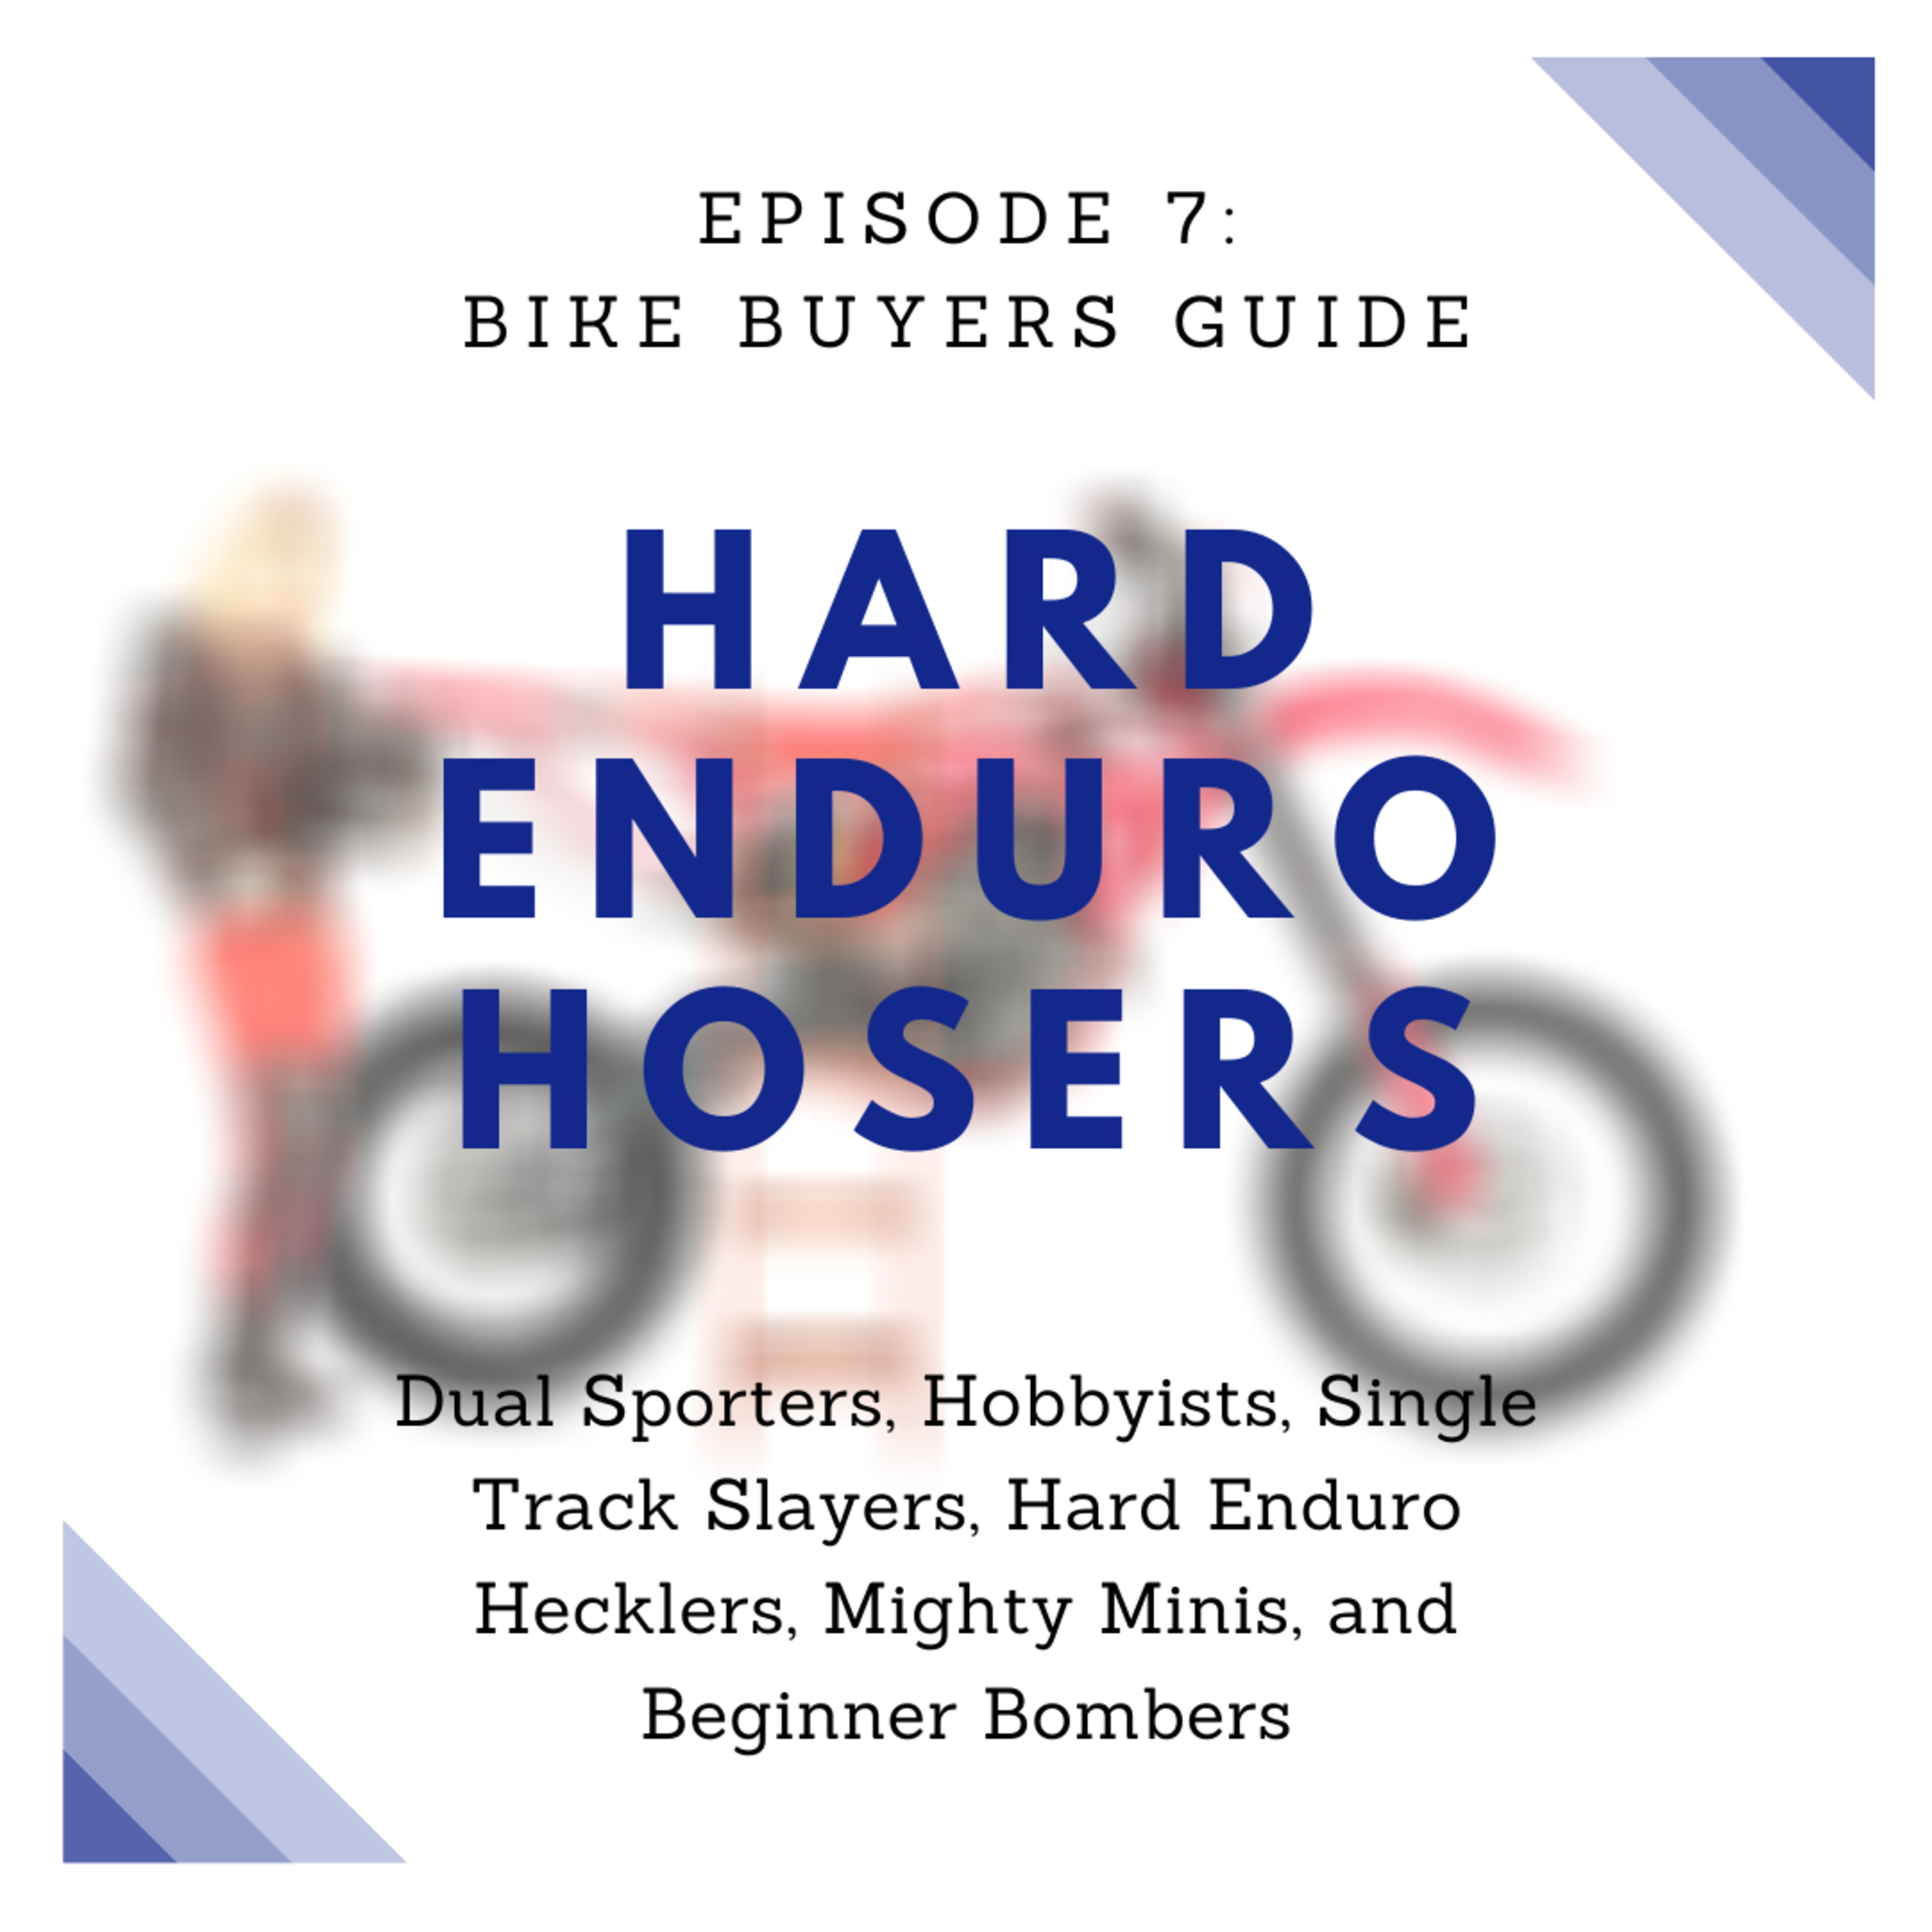 Episode 7: The Offroad Riders Bike Guide